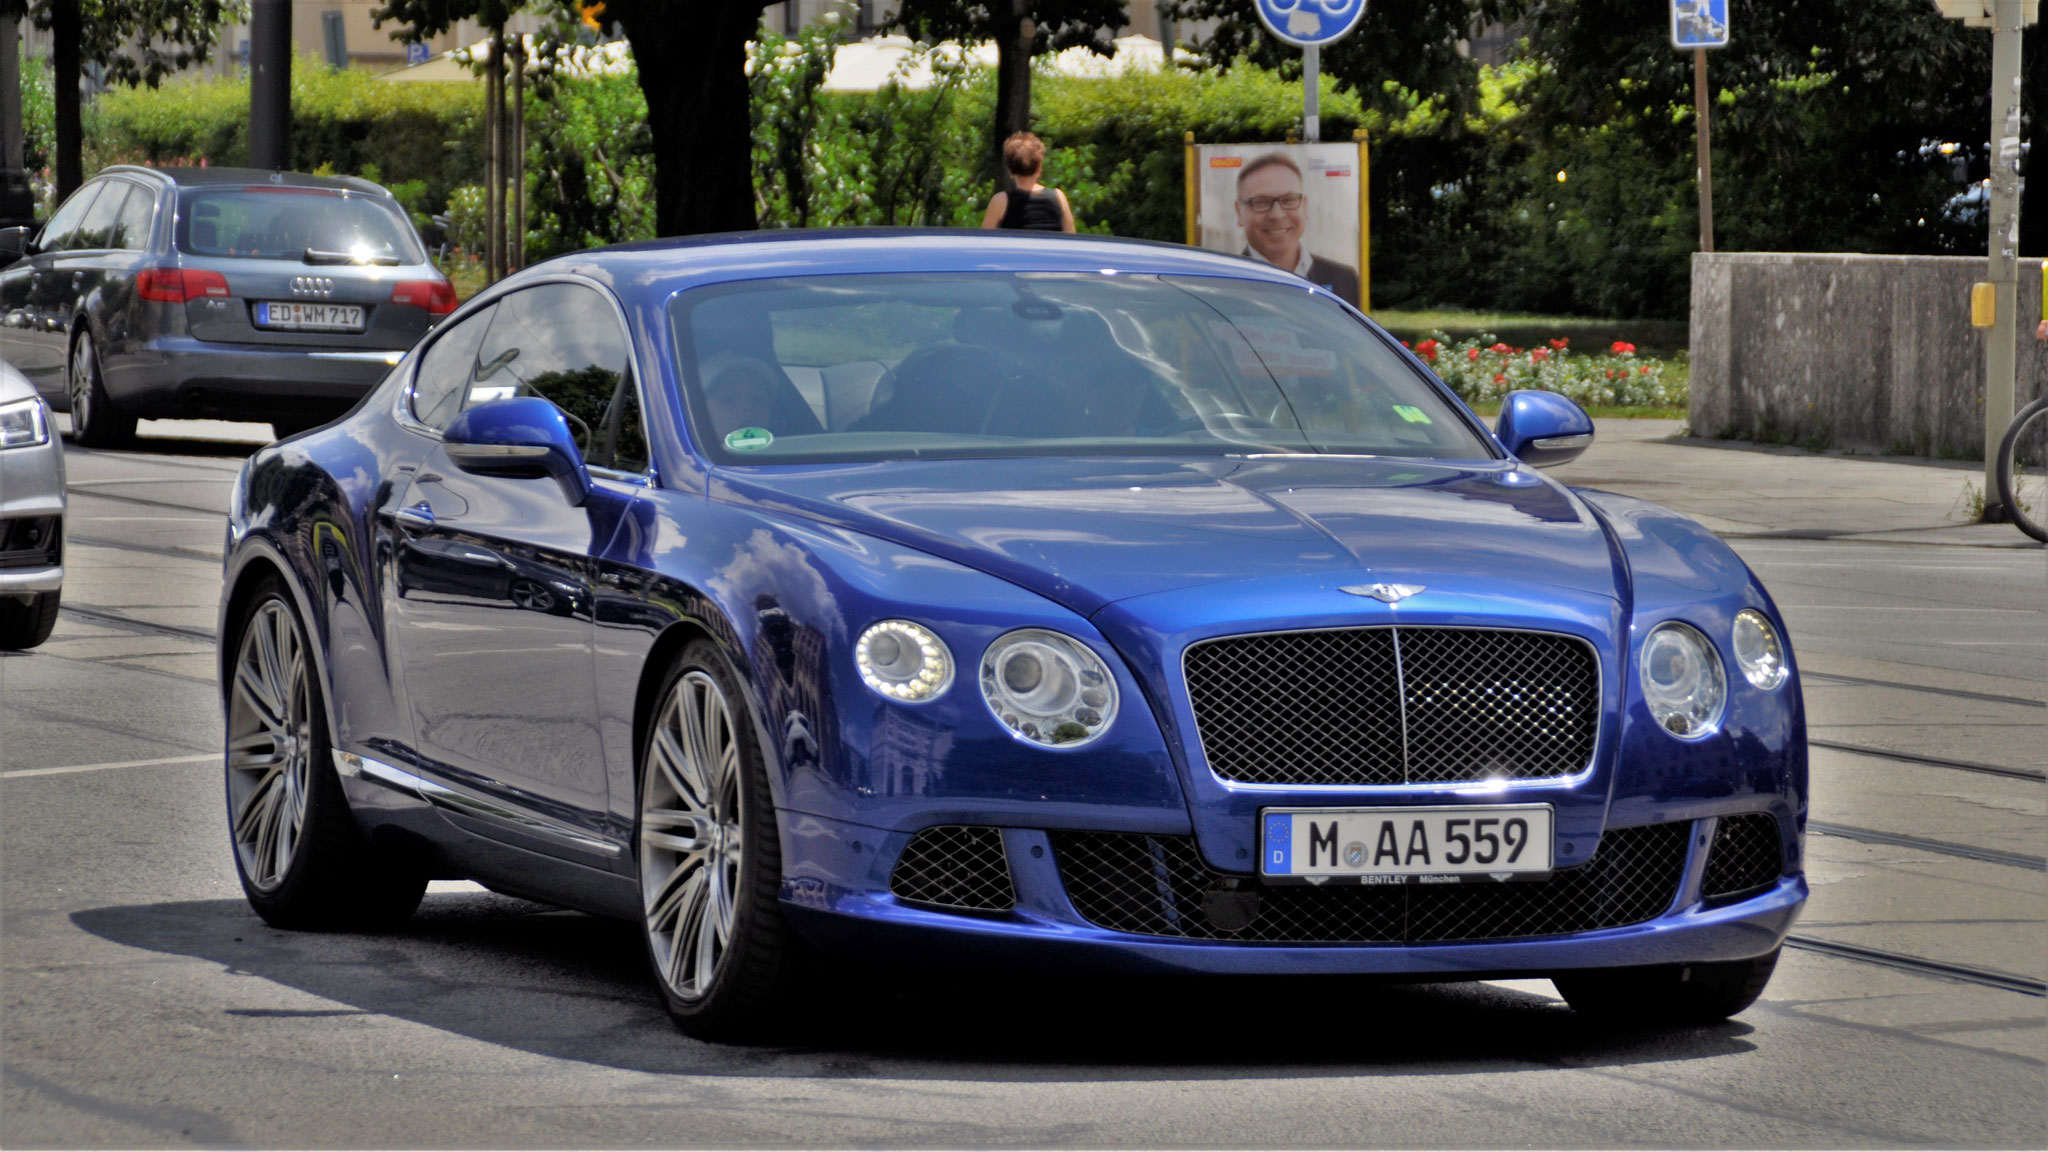 Bentley Continental GT W12 - M-AA-559